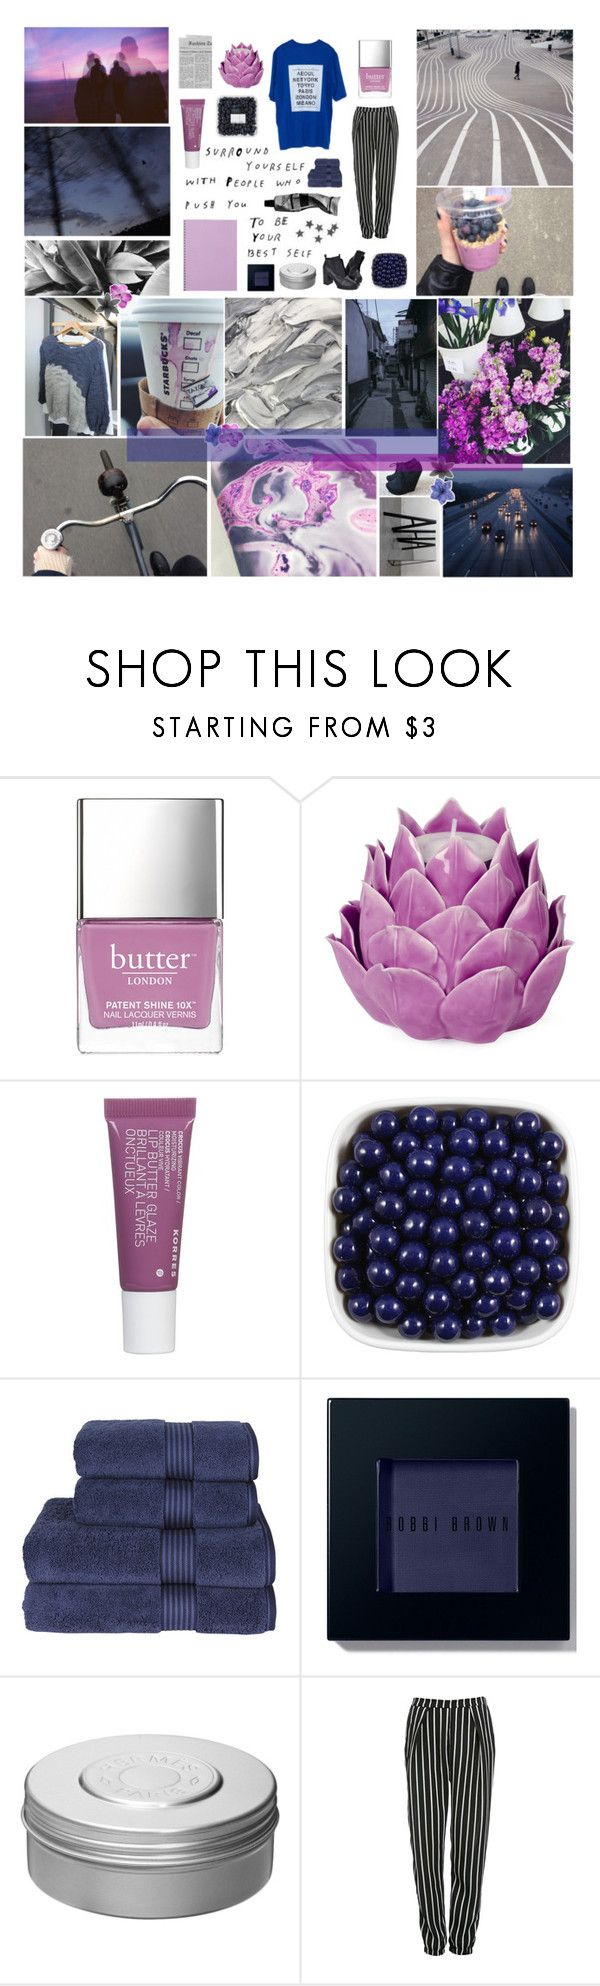 """don't tell me what to do"" by random-little-me ❤ liked on Polyvore featuring GET LOST, Nicole Miller, She's So, Butter London, Zara Home, Korres, Christy, Bobbi Brown Cosmetics, Hermès and Aesop"